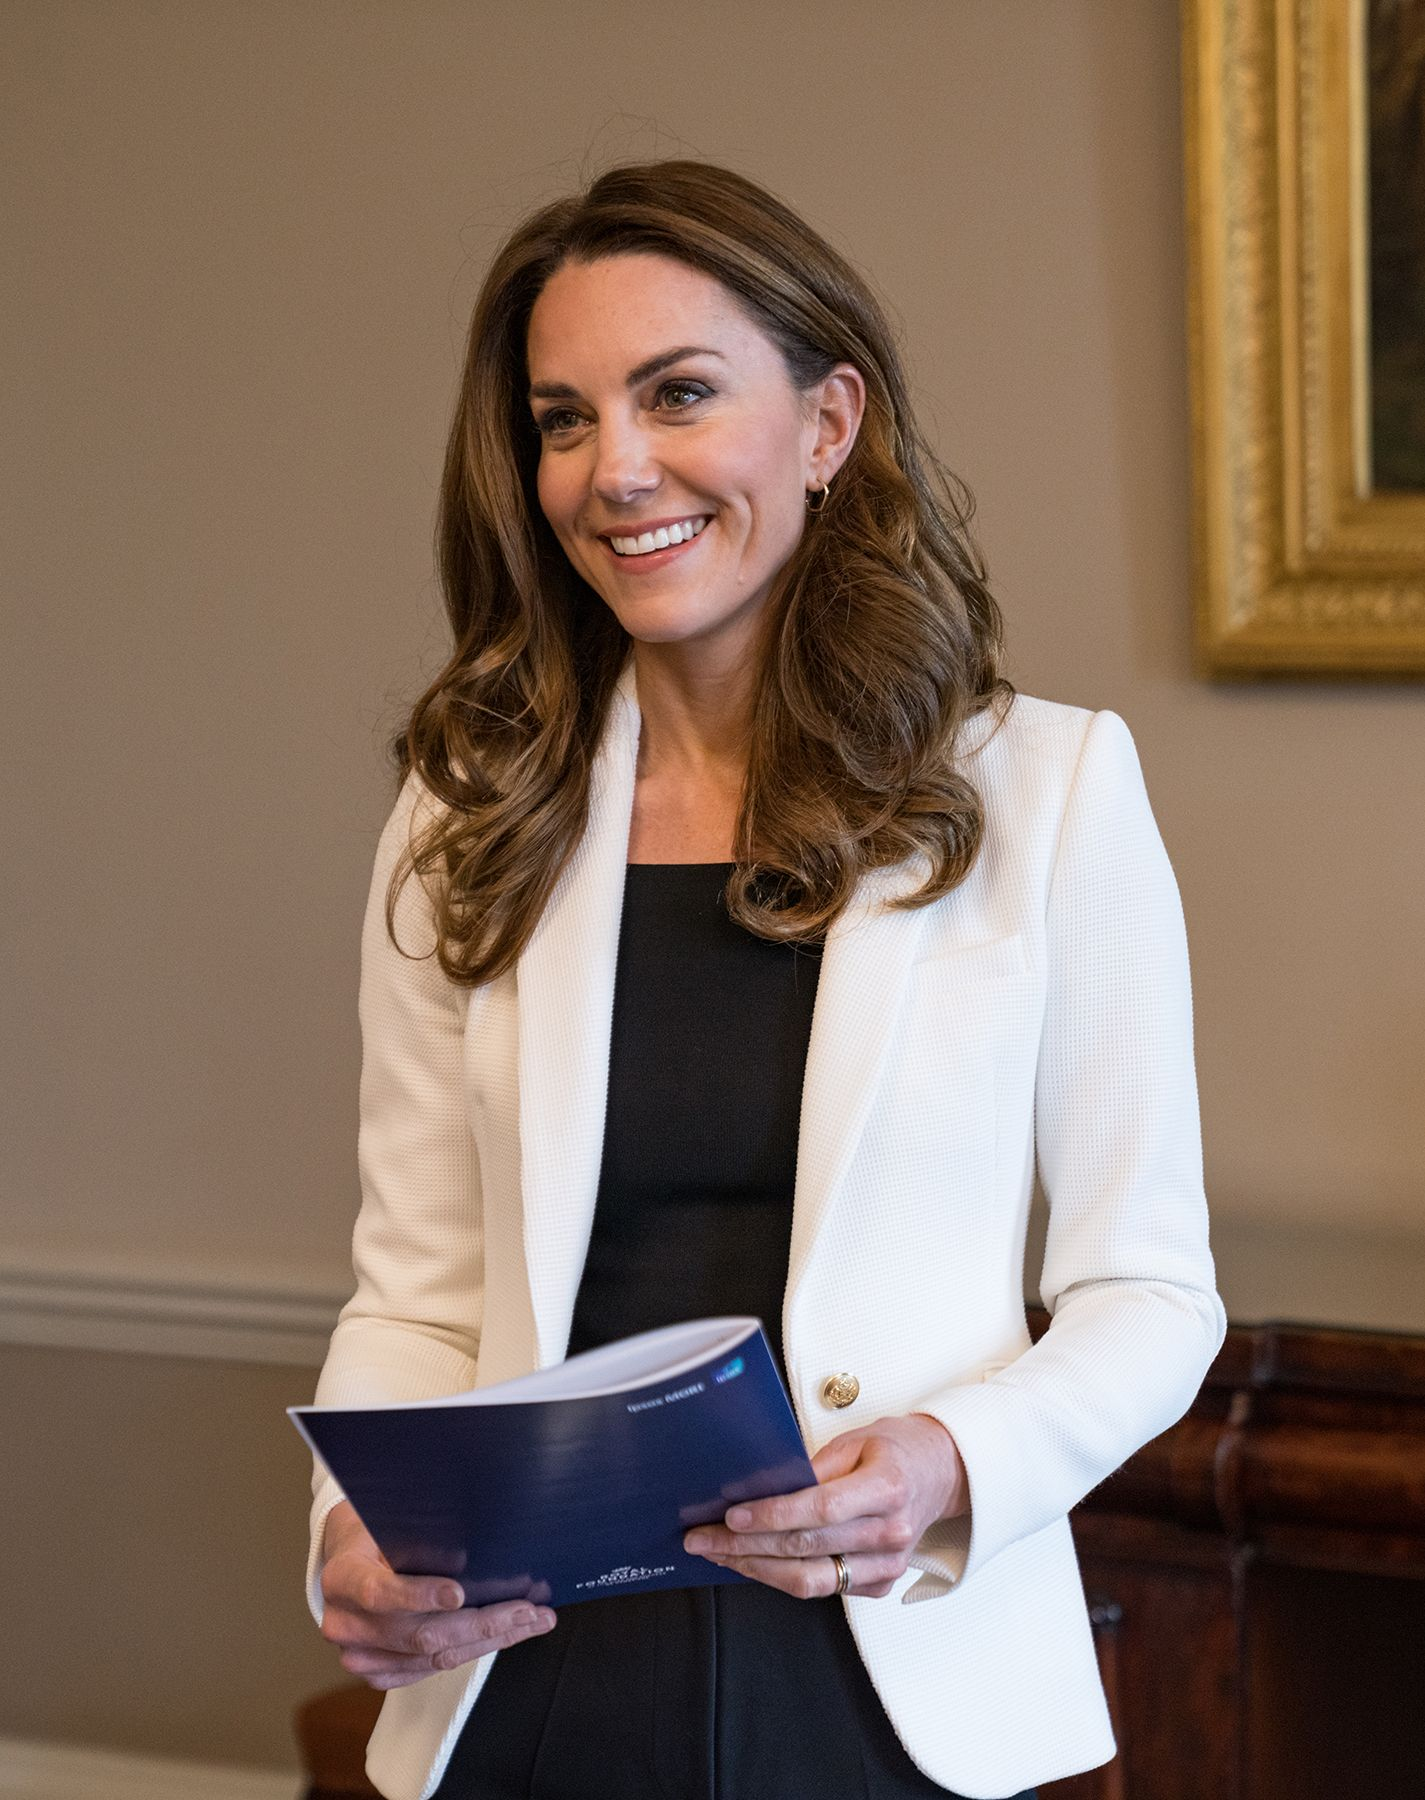 Duchess Kate Reveals the Survey Results That Will Shape Her Future Work